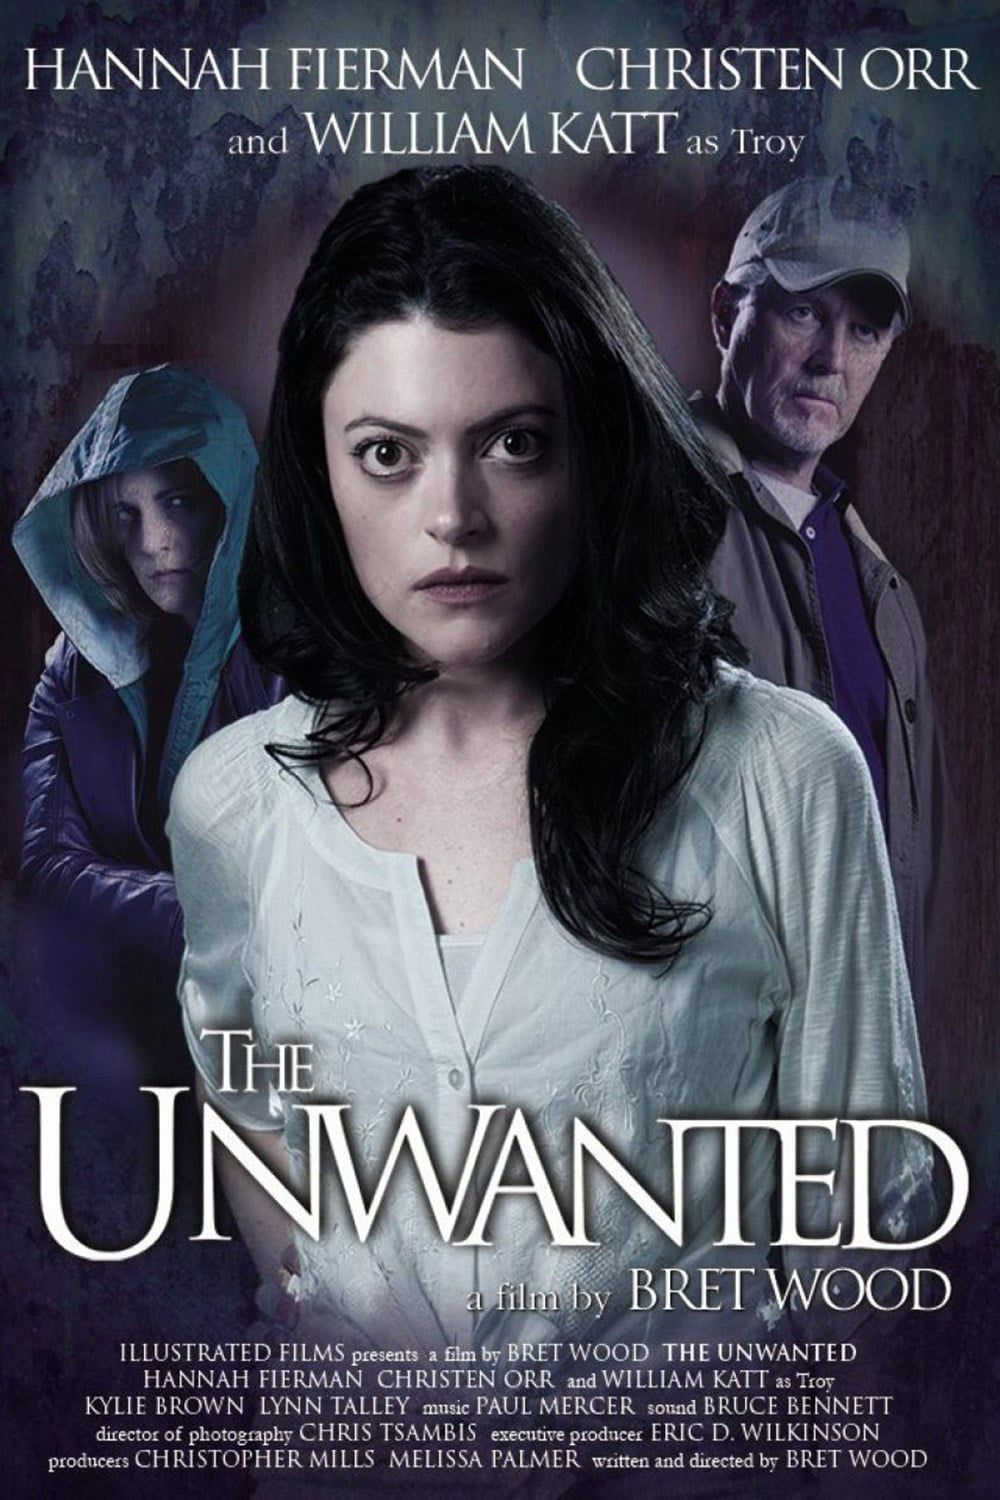 The Unwanted - Film (2014)